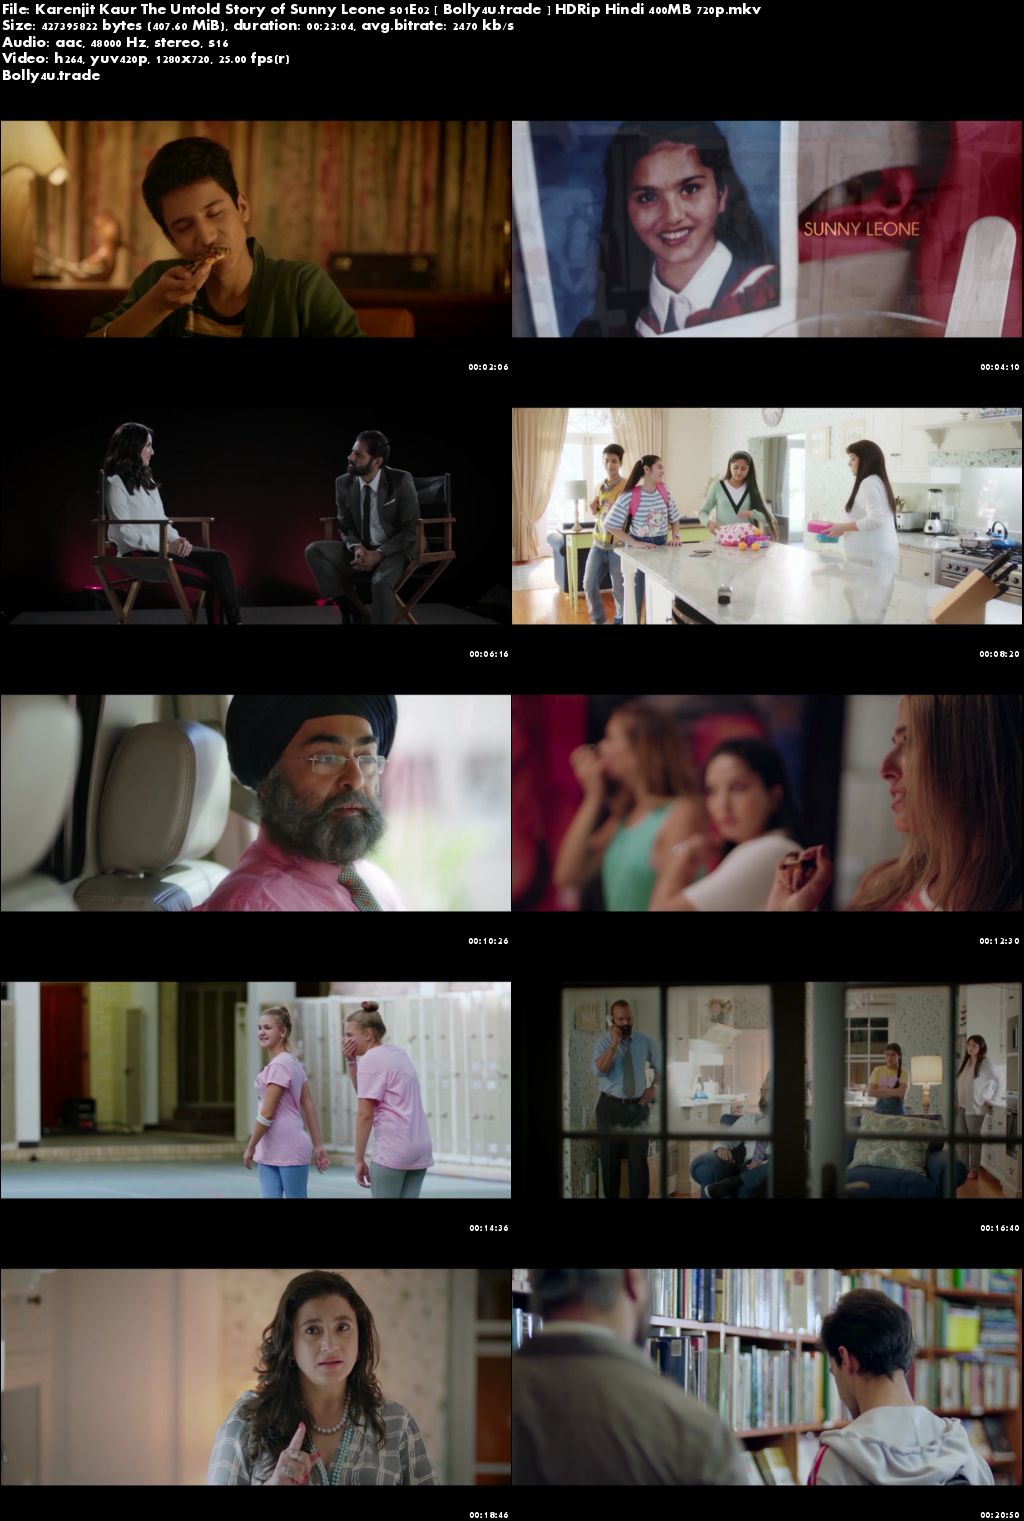 Karenjit Kaur The Untold Story of Sunny Leone S01E02 HDRip 400MB Hindi 720p Download